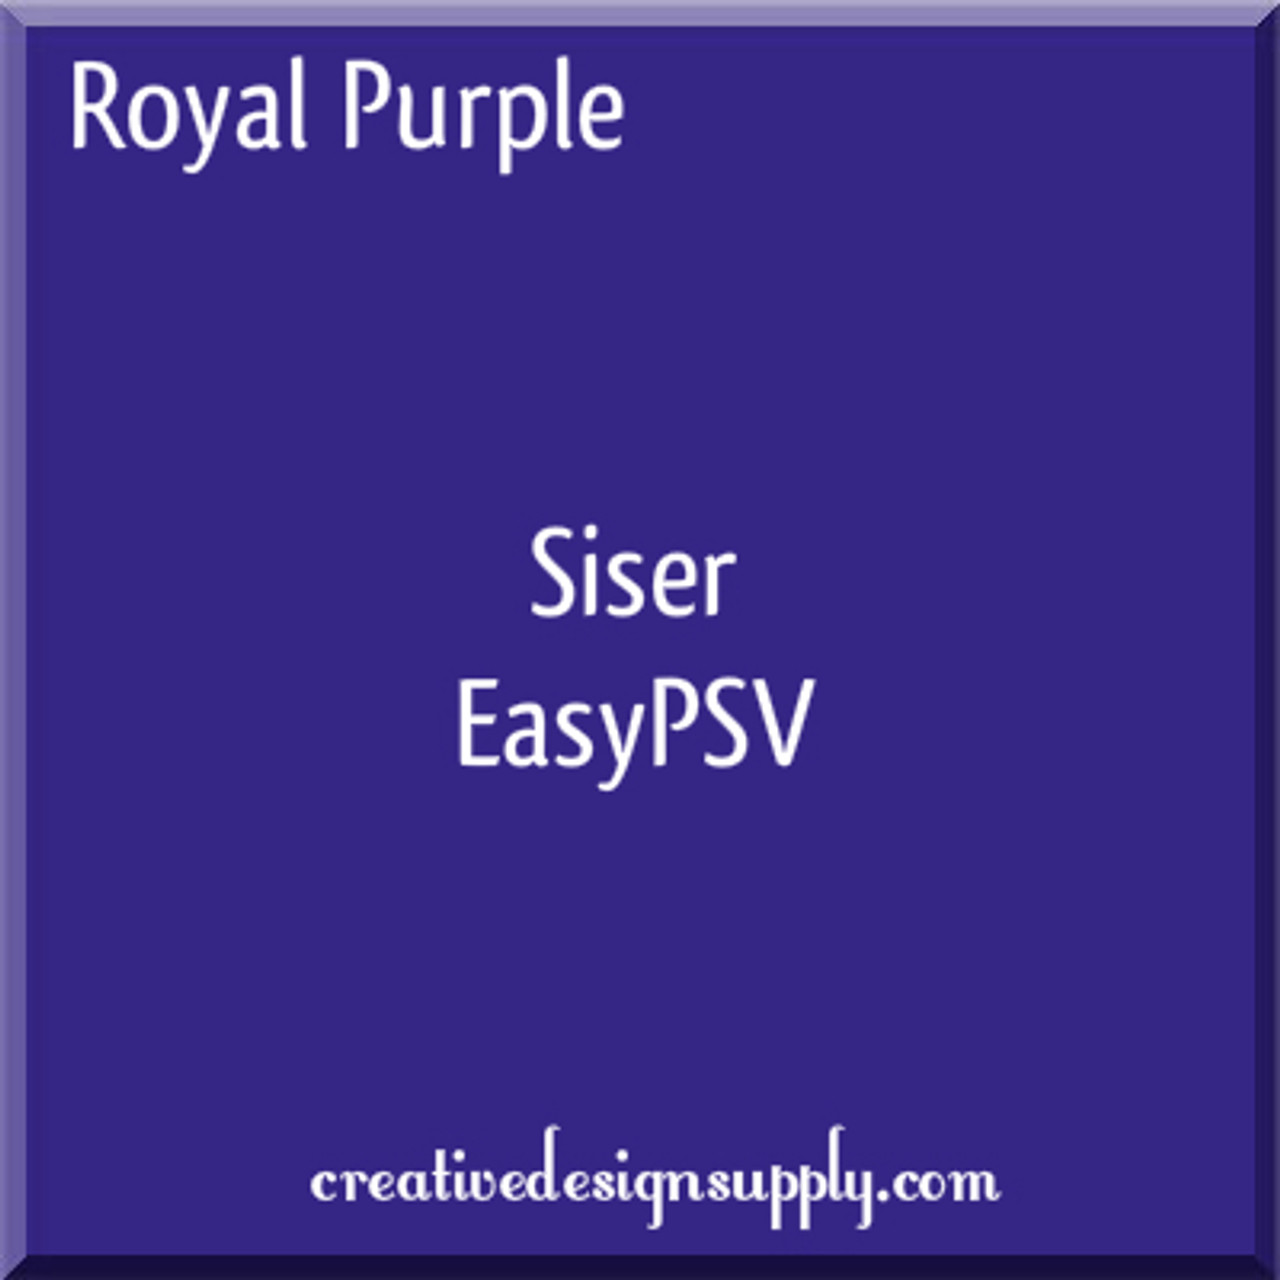 Royal Purple Siser EasyPSV